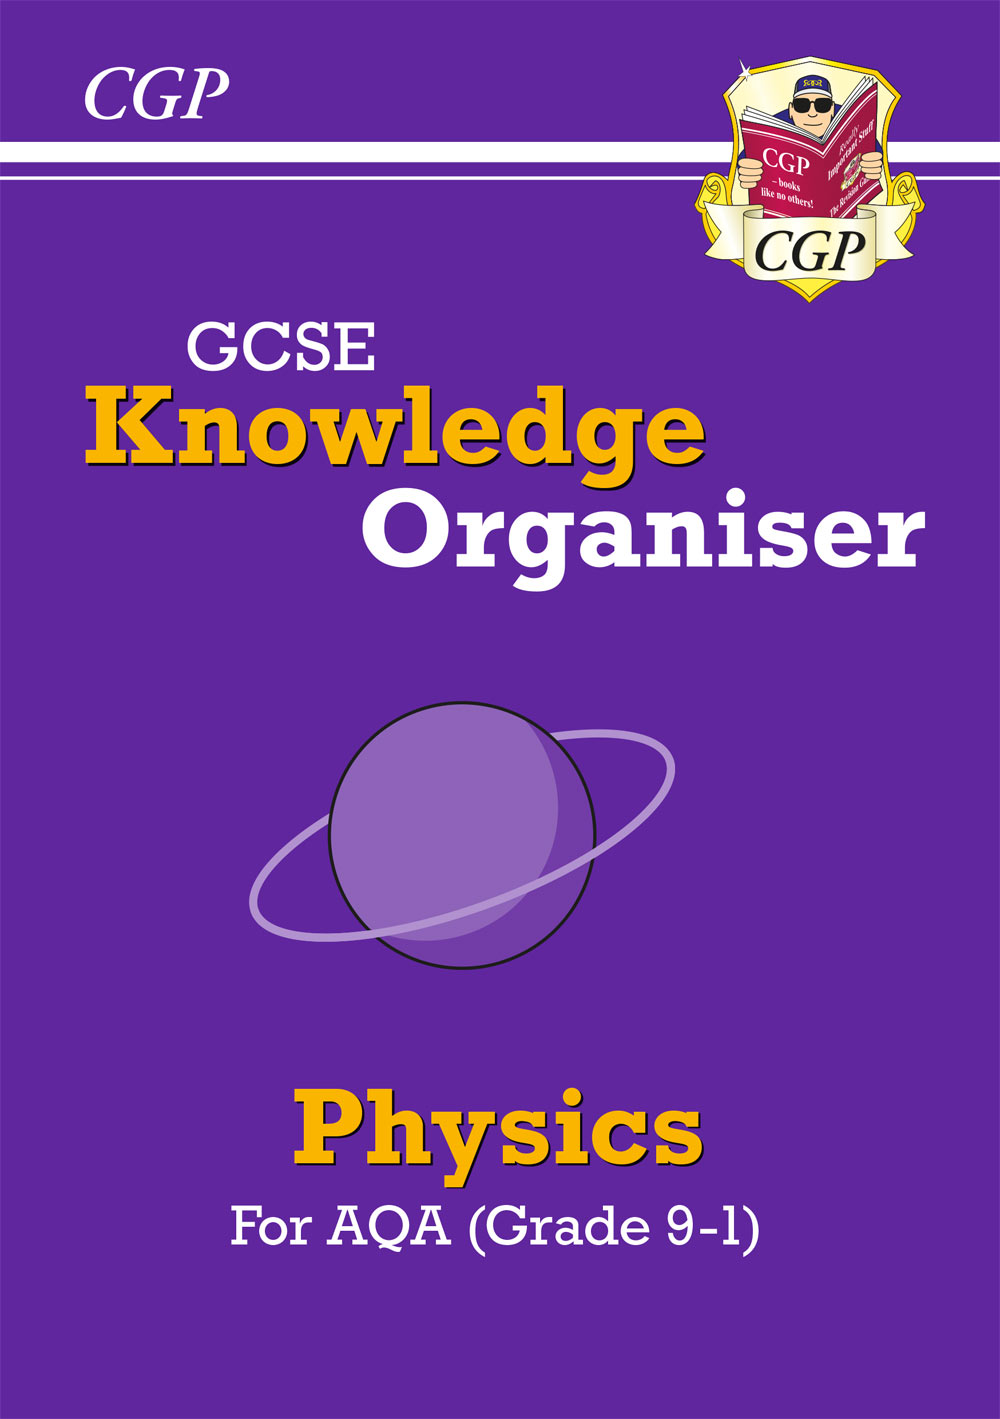 PANO41 - New GCSE Knowledge Organiser: AQA Physics (Grade 9-1)